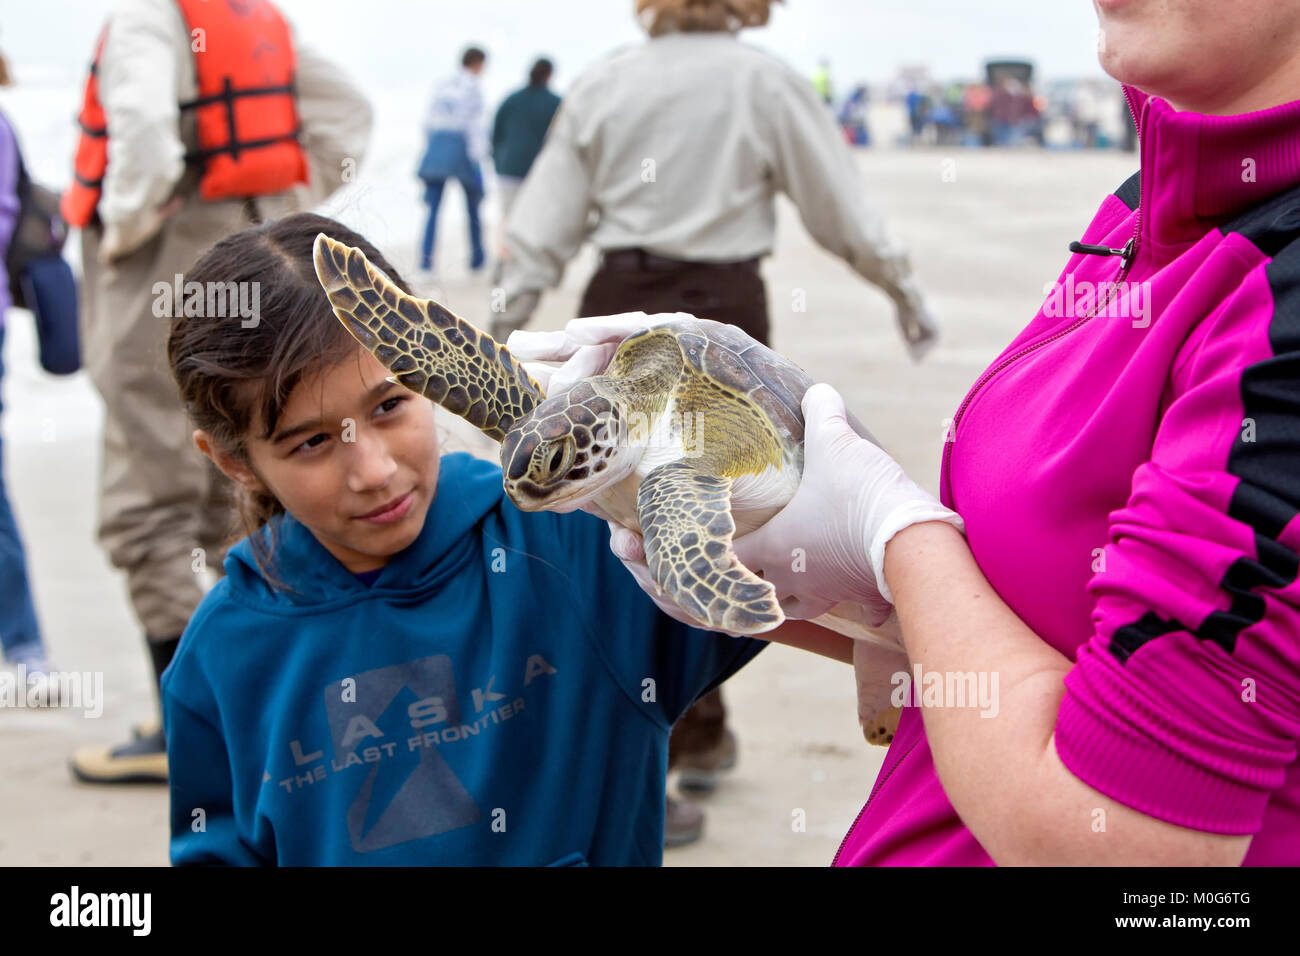 Volunteer with daughter carrying rehabilitated Kemp's Ridley Sea Turtle 'Lepidochelys kempii' for release. - Stock Image